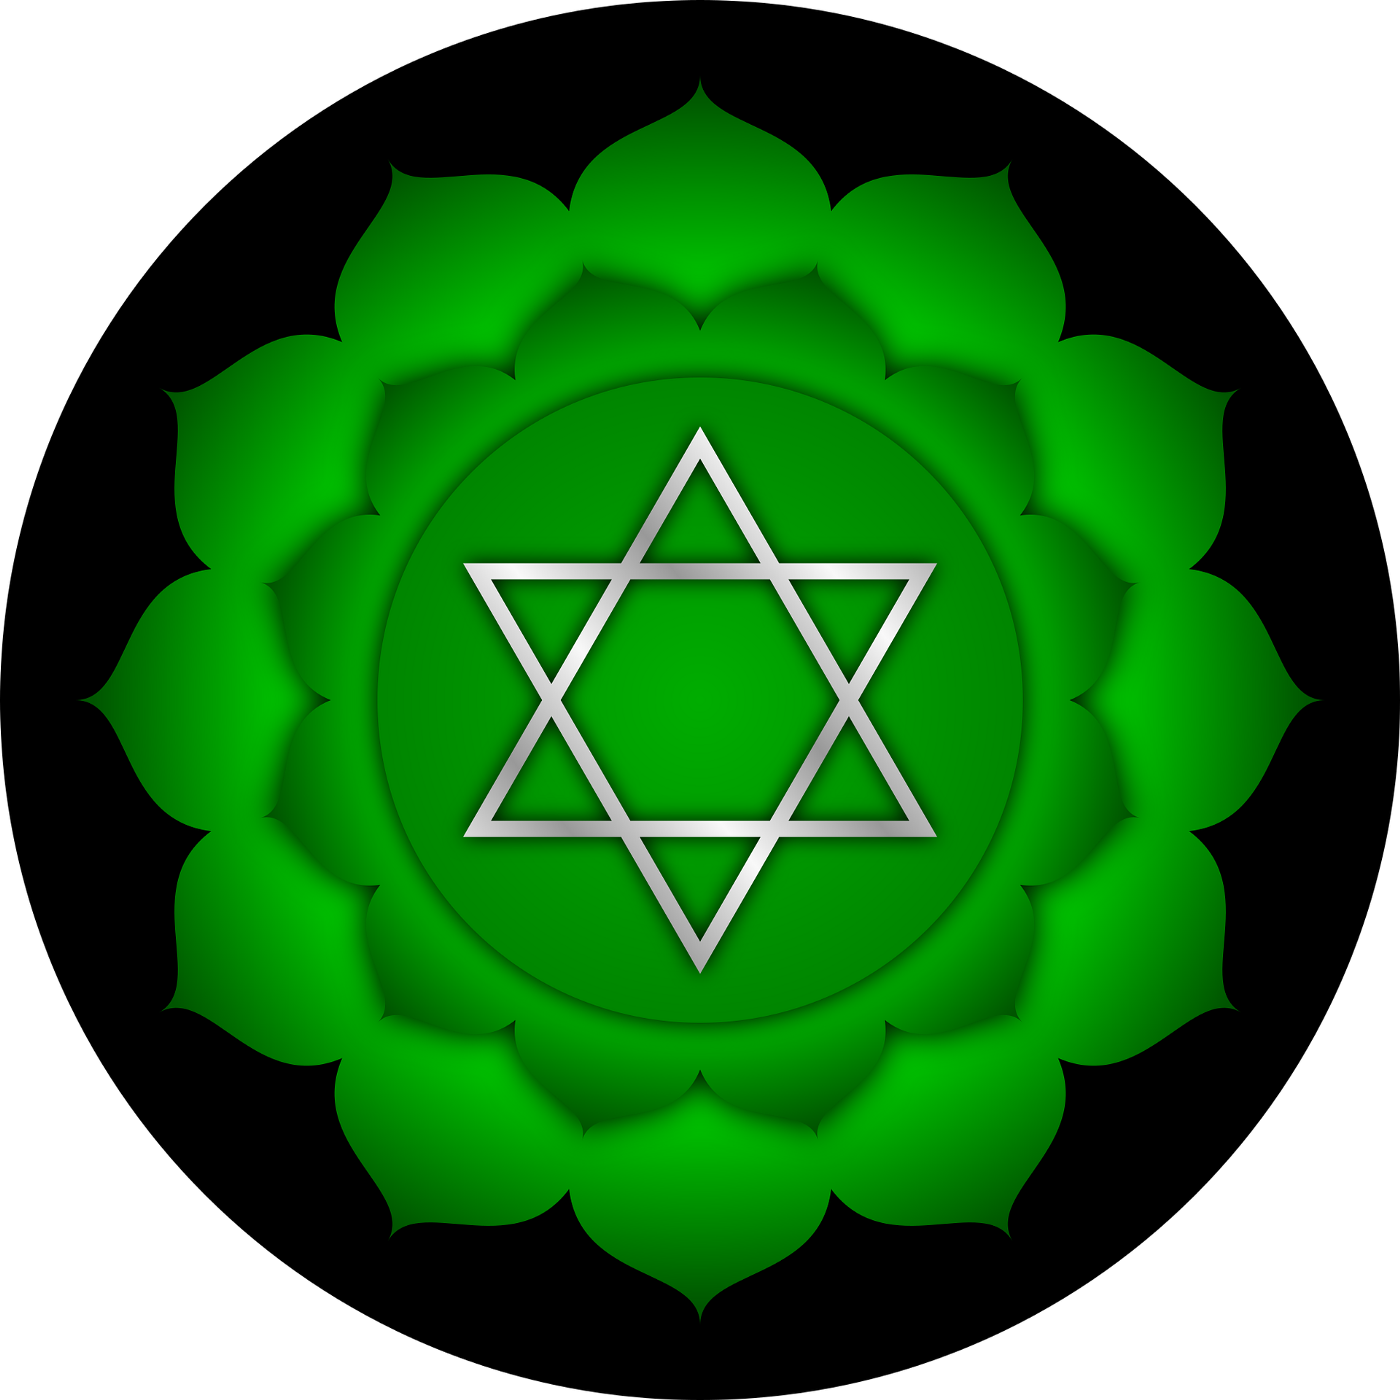 Green carries the vibration of growth, new beginnings, health, renewal, harmony, peace, and love.